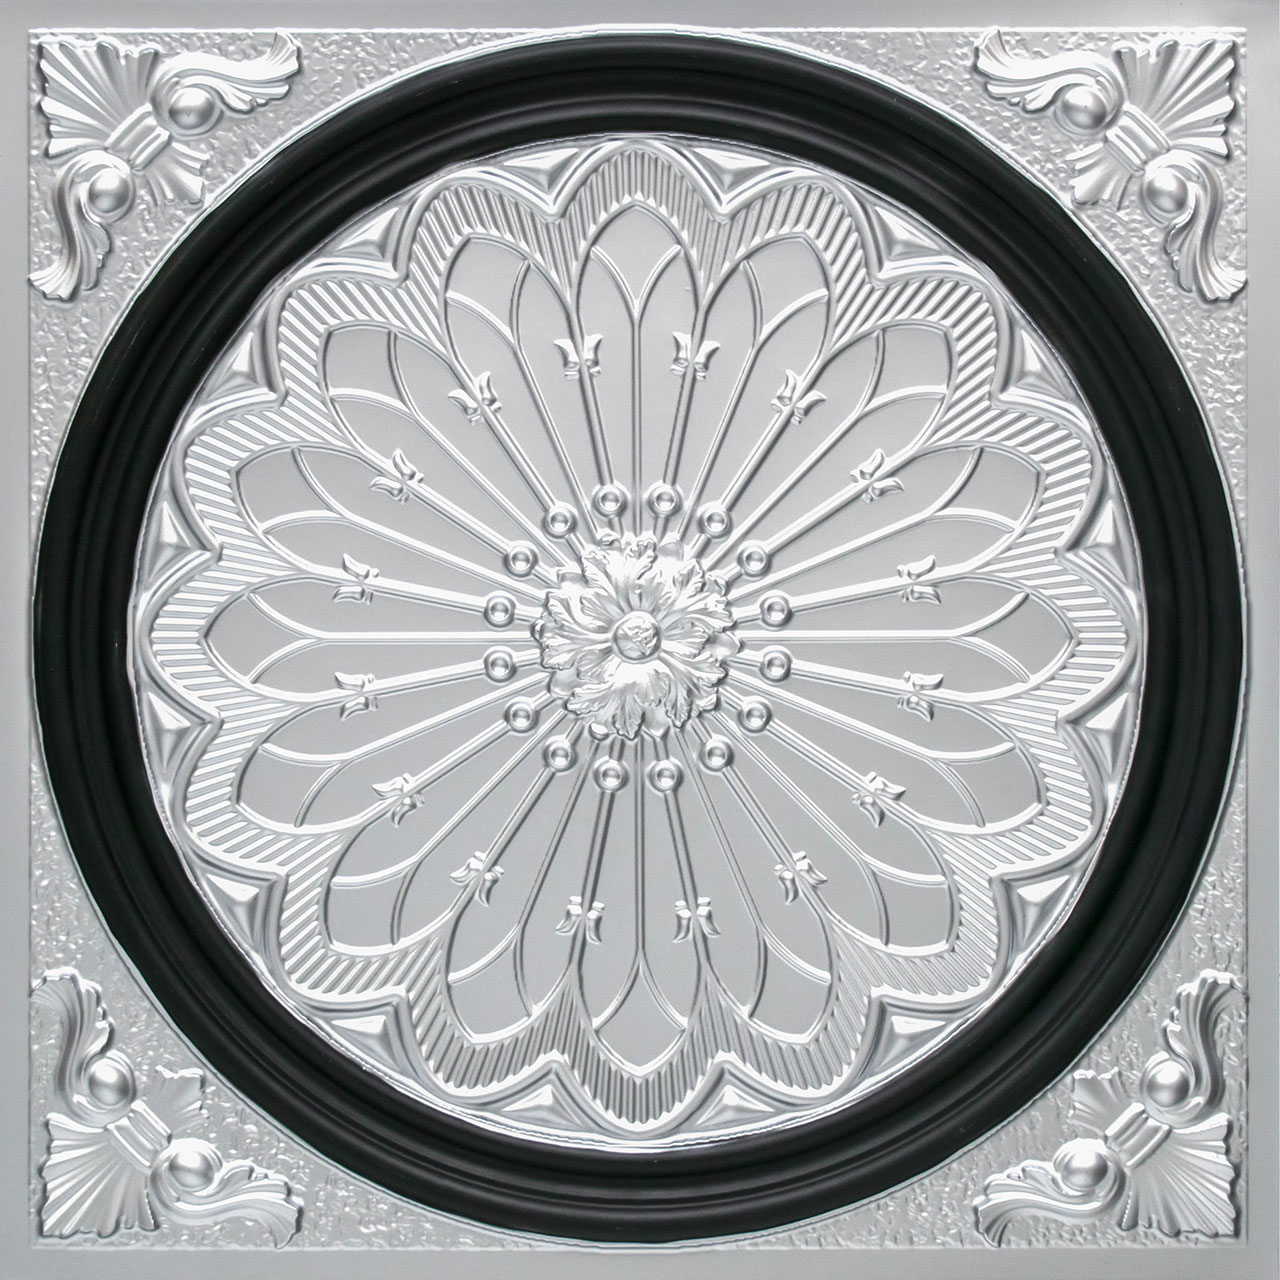 Rose Window - Faux Tin Ceiling Tile - 24 in x 24 in - #238